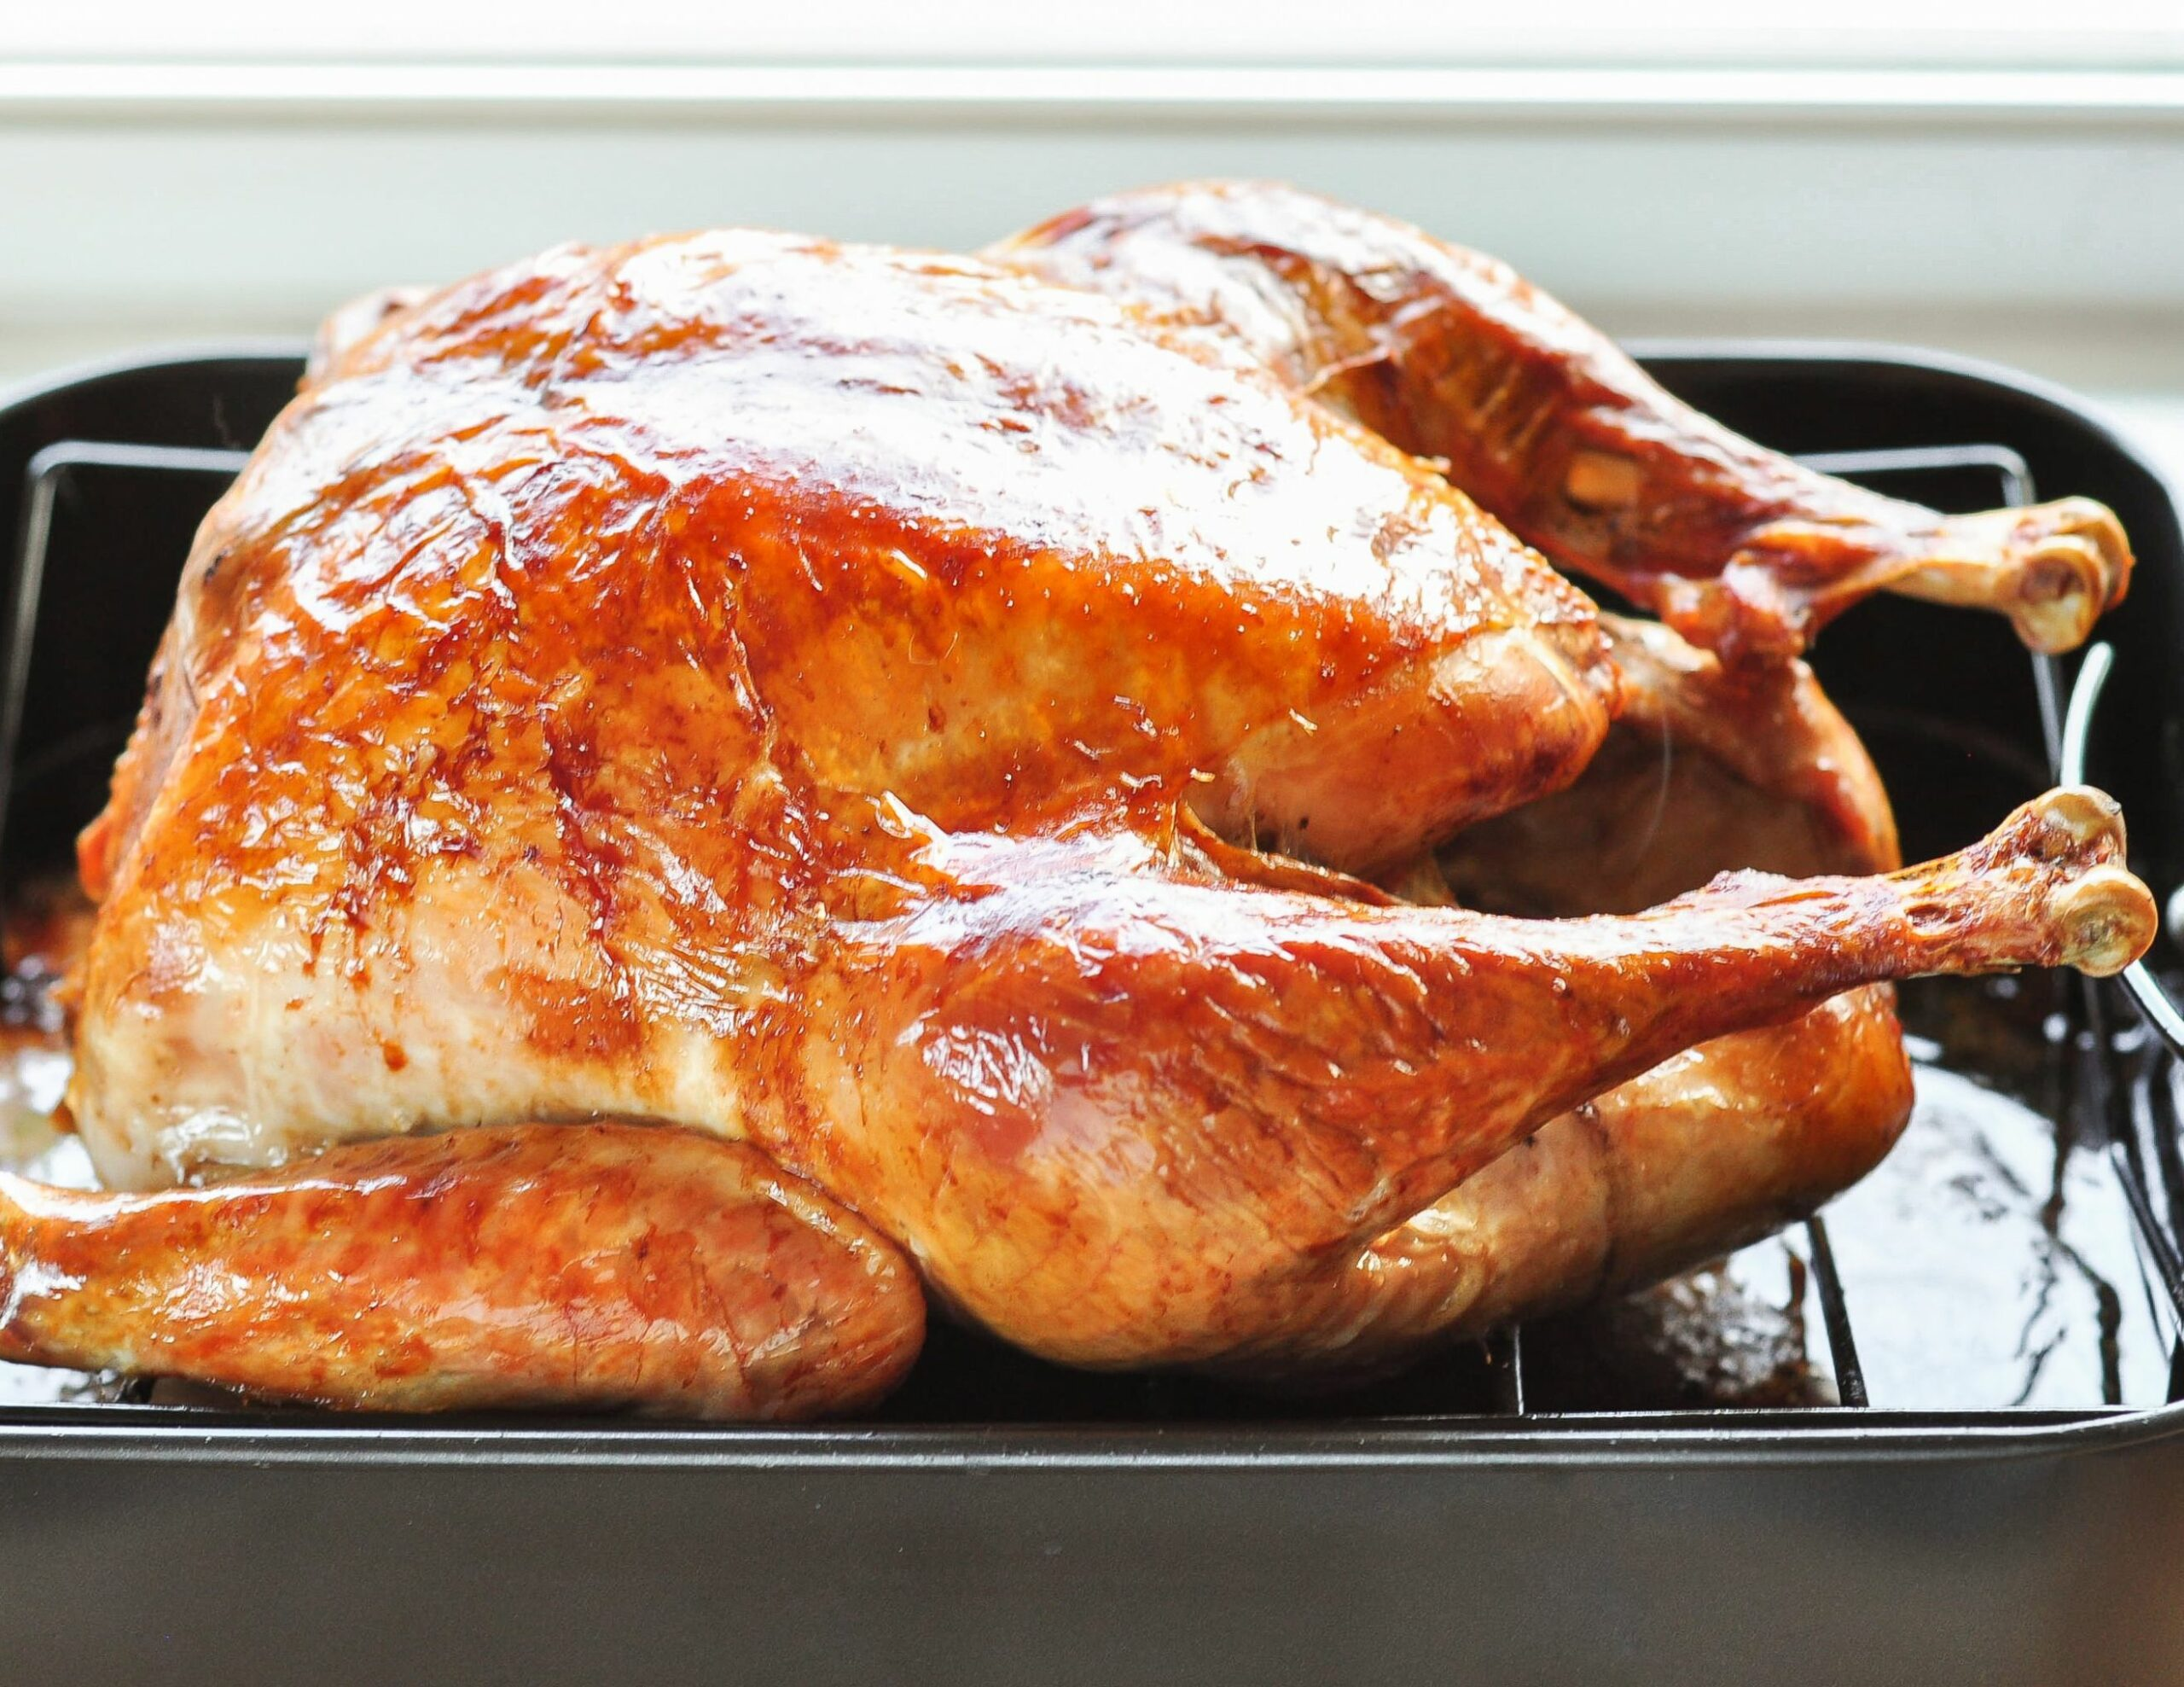 How To Cook a Turkey for Thanksgiving - Recipes Cooking Turkey